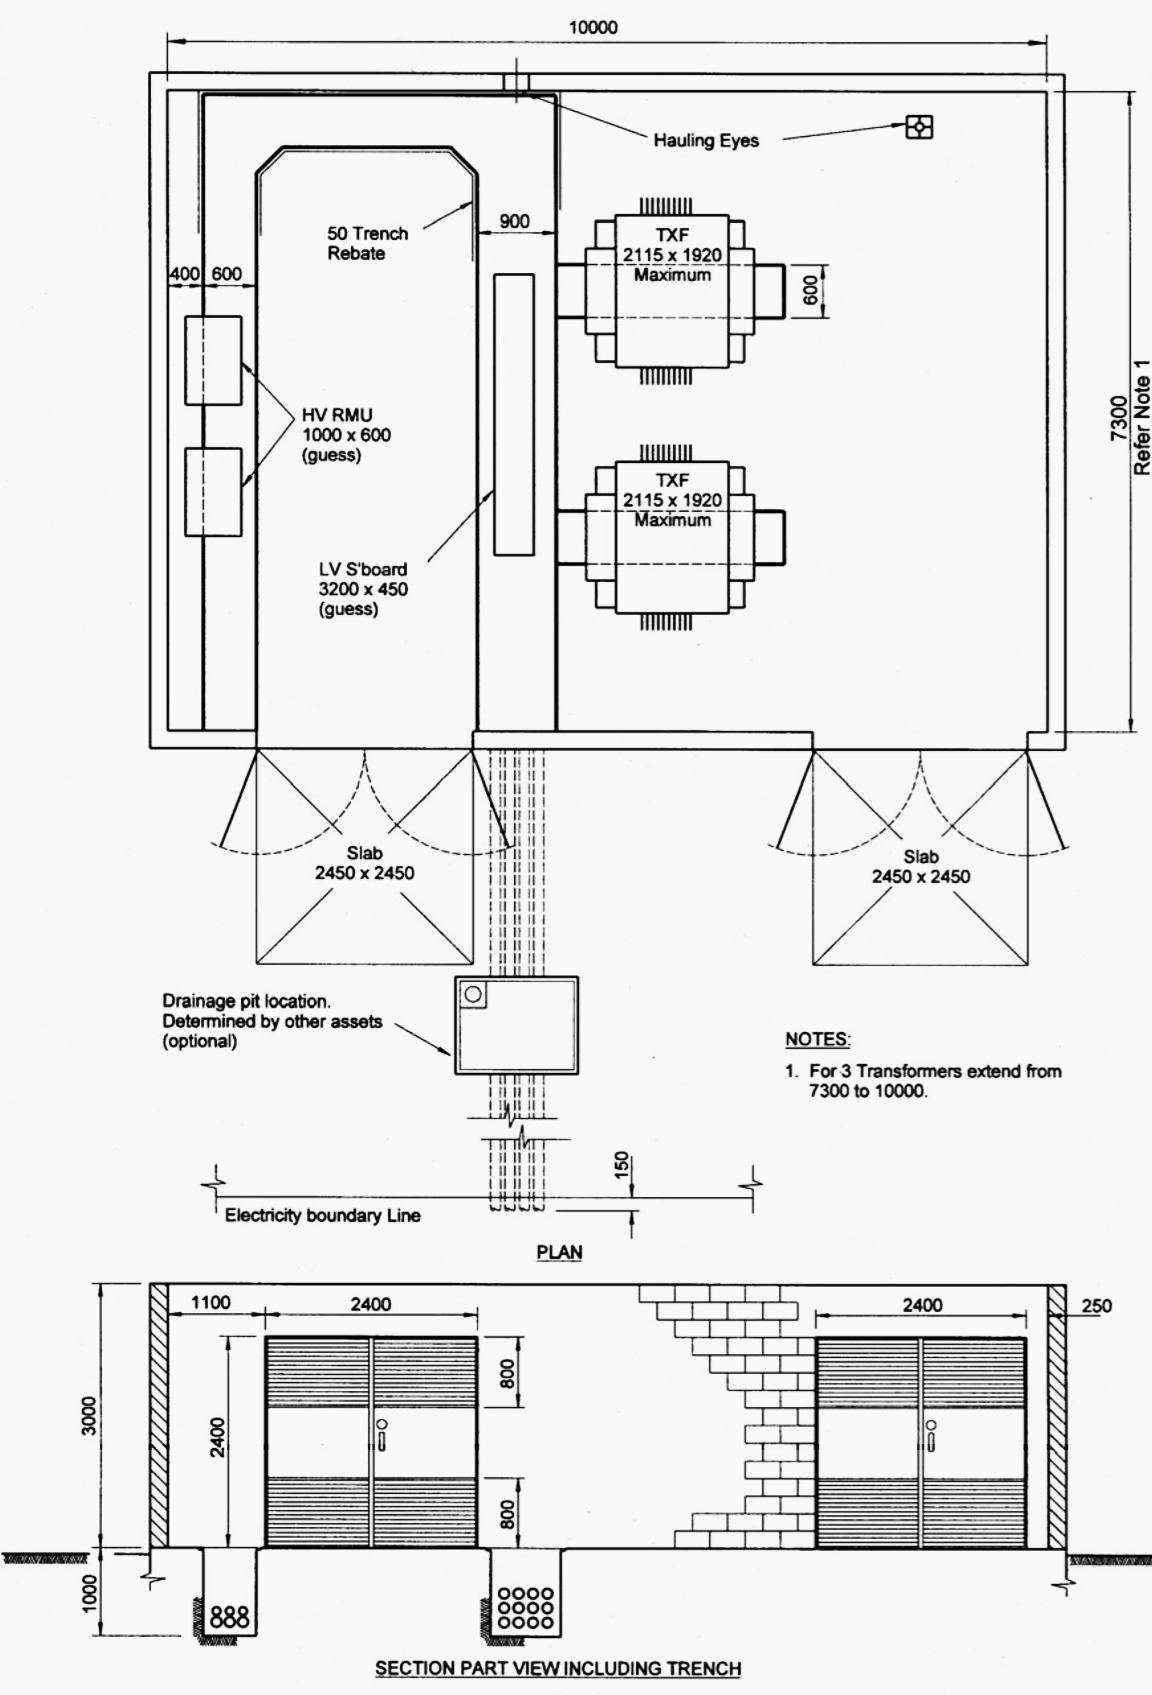 Indoor distribution substation layout with 2 transformers